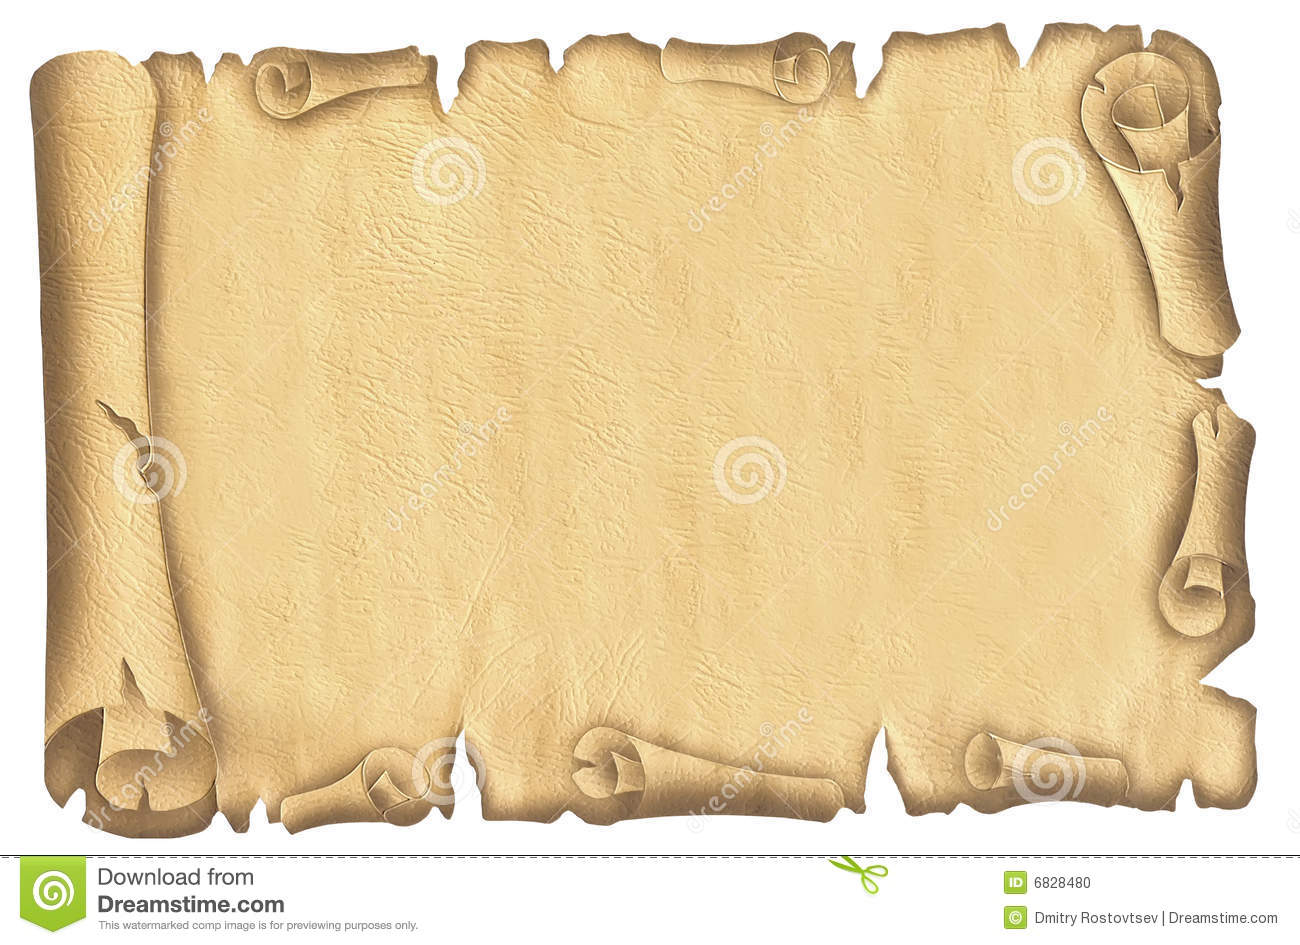 Old papyrus stock photo. Image of egypt, crumpled, poster - 6828480